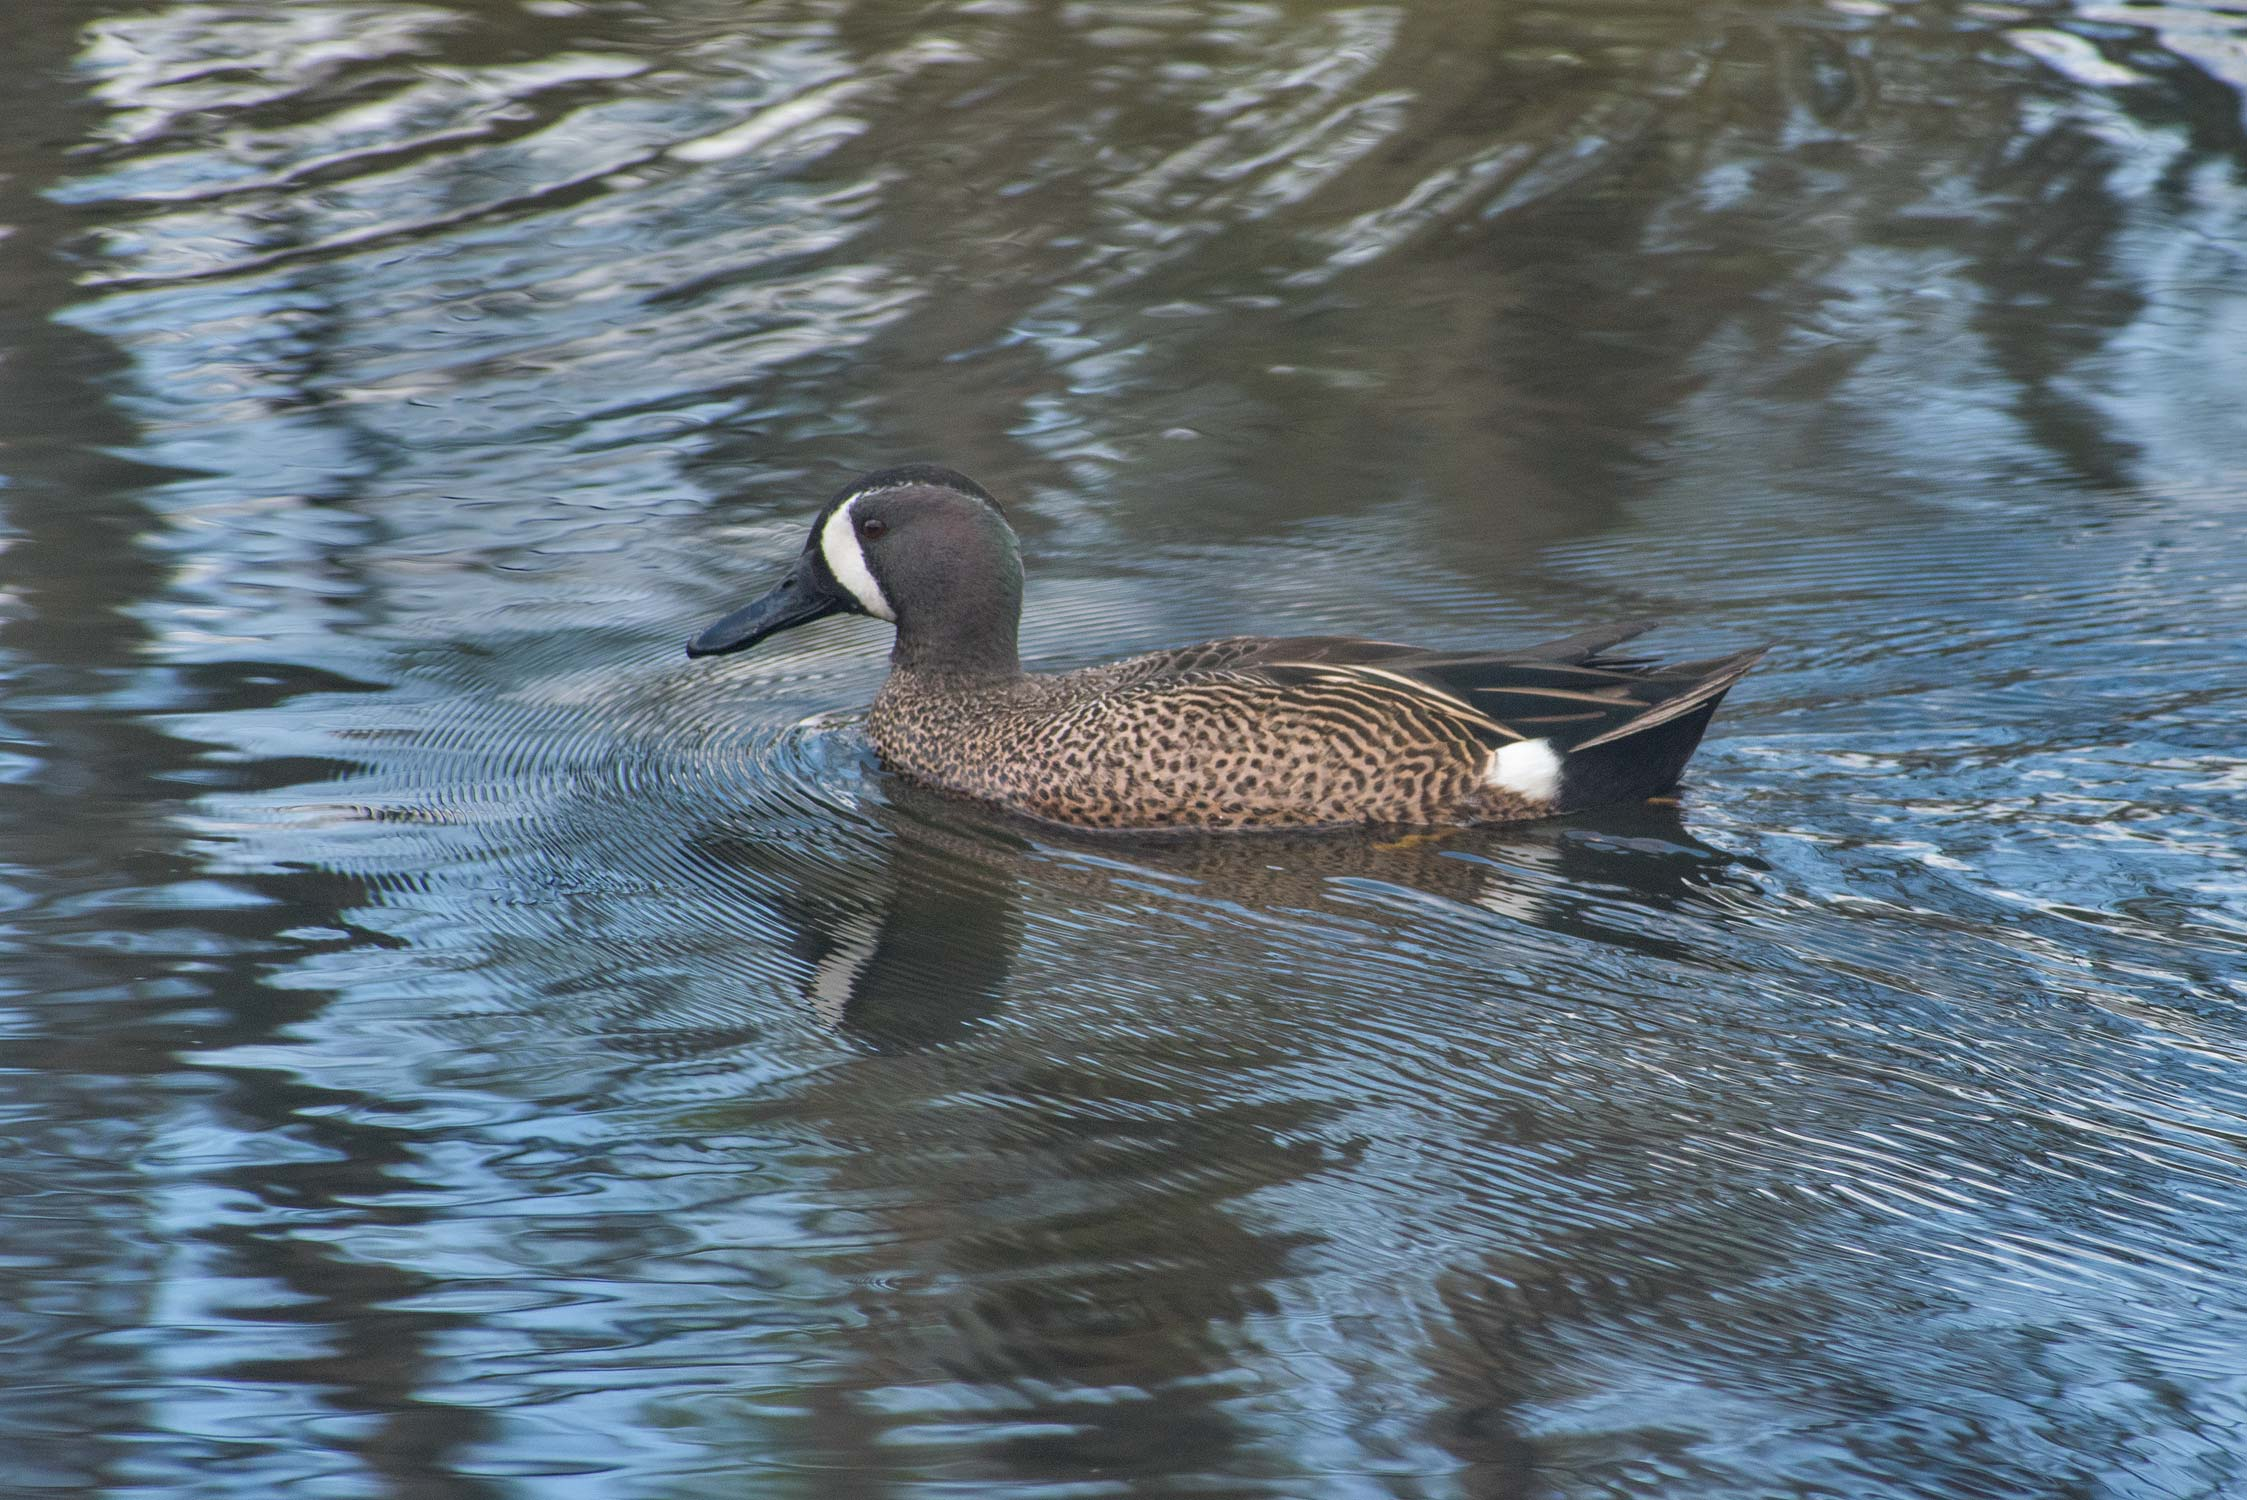 A duck in Elm Lake in Brazos Bend State Park. Needville, Texas